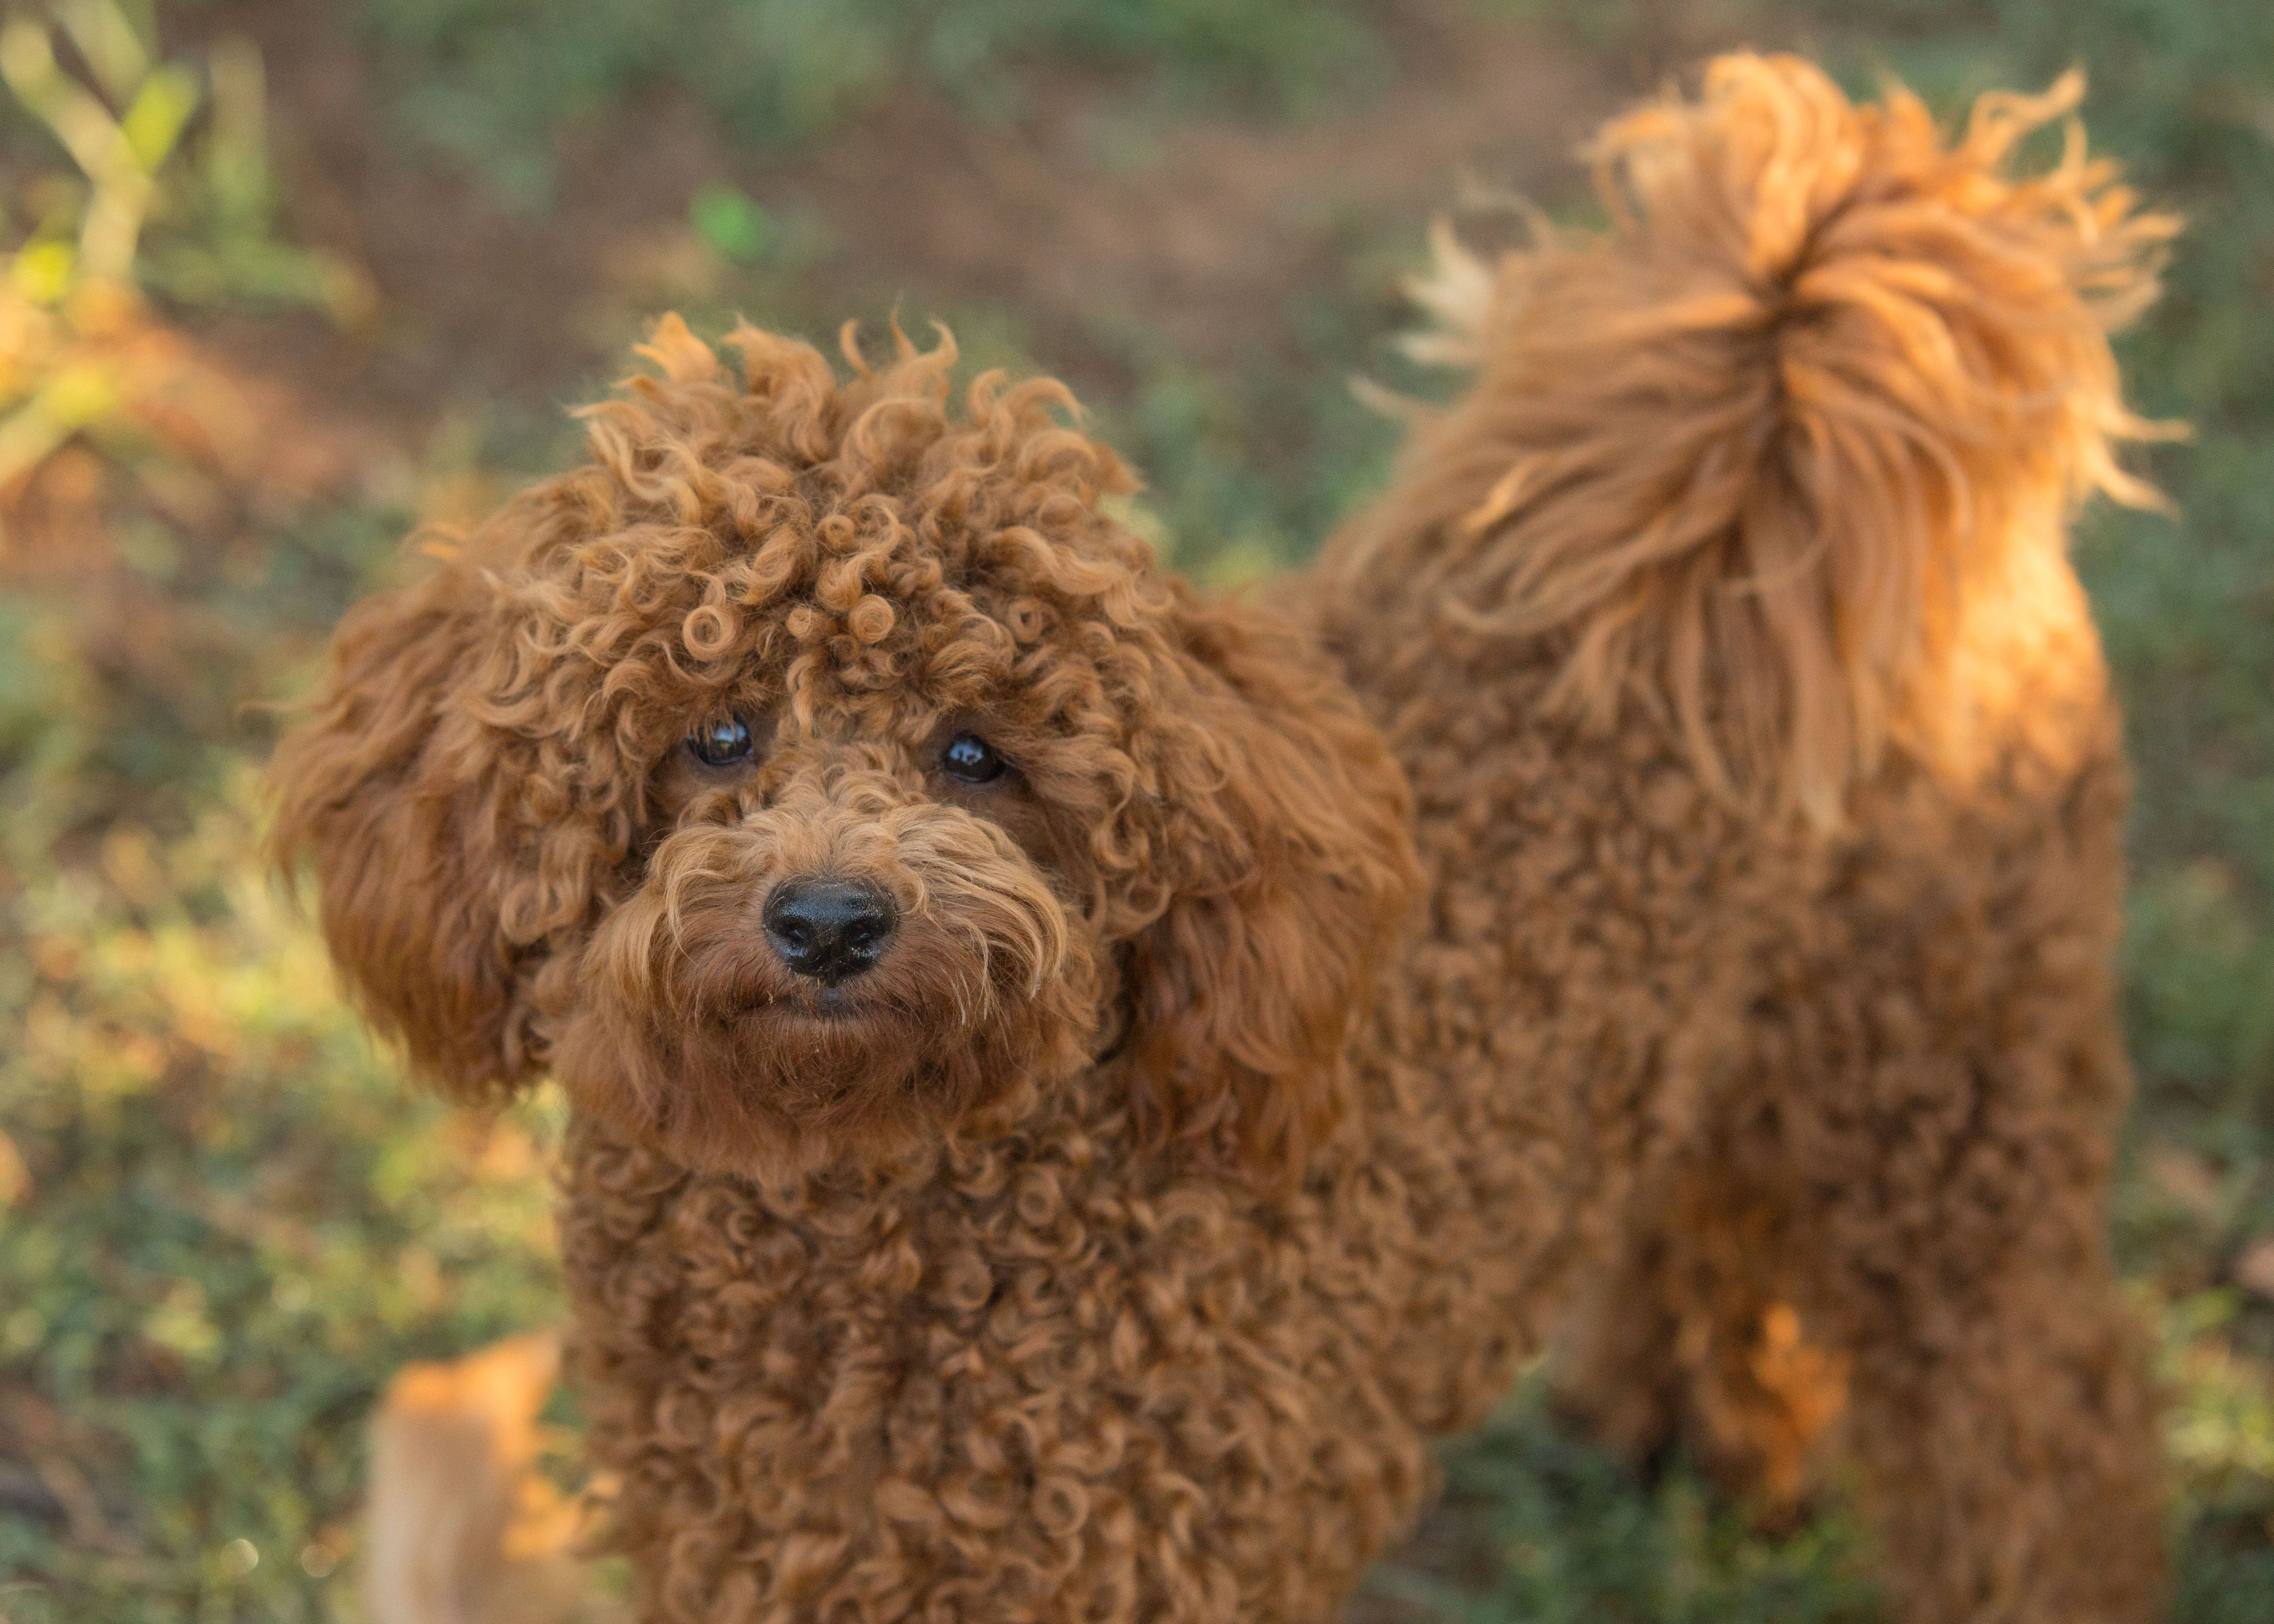 Piccolo The Poodle Is Going Through A Coat Change At The Moment Here You Can See His Curls Are Getting Tighter A Poodle Puppy Dog Grooming Salons Pet Grooming